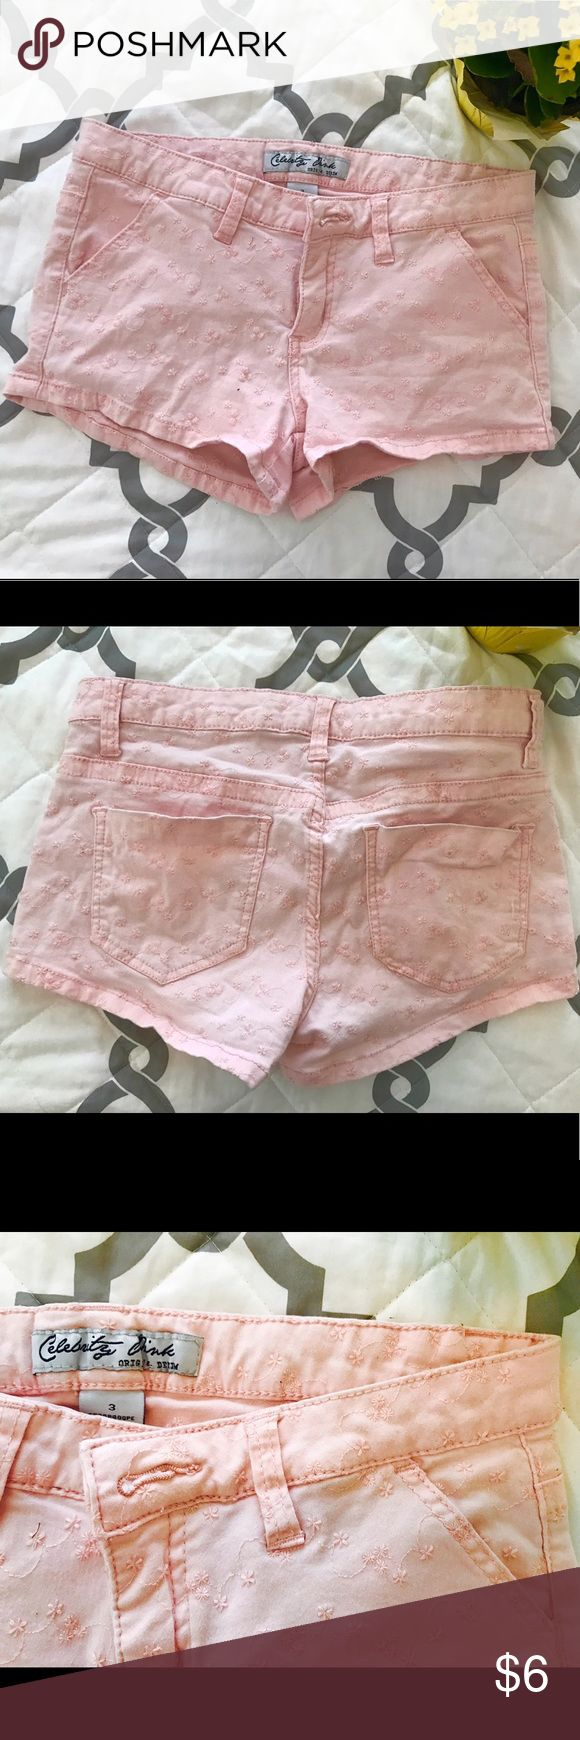 Light Pink Shorts These are comfortable light pink shorts Shorts